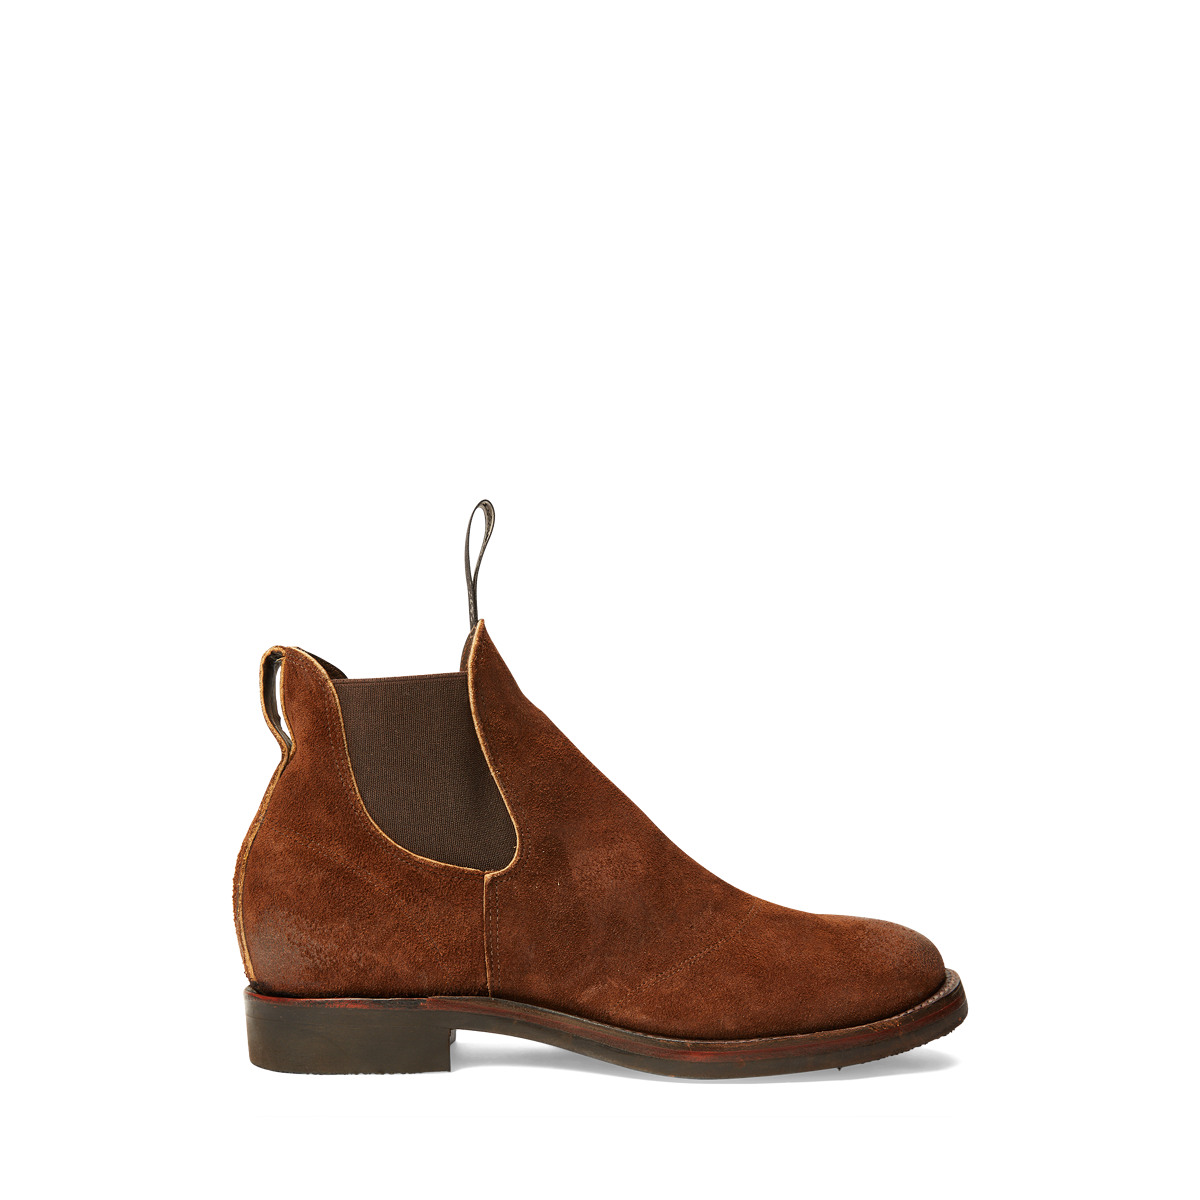 6ce3f095d76 Suede Chelsea Boot